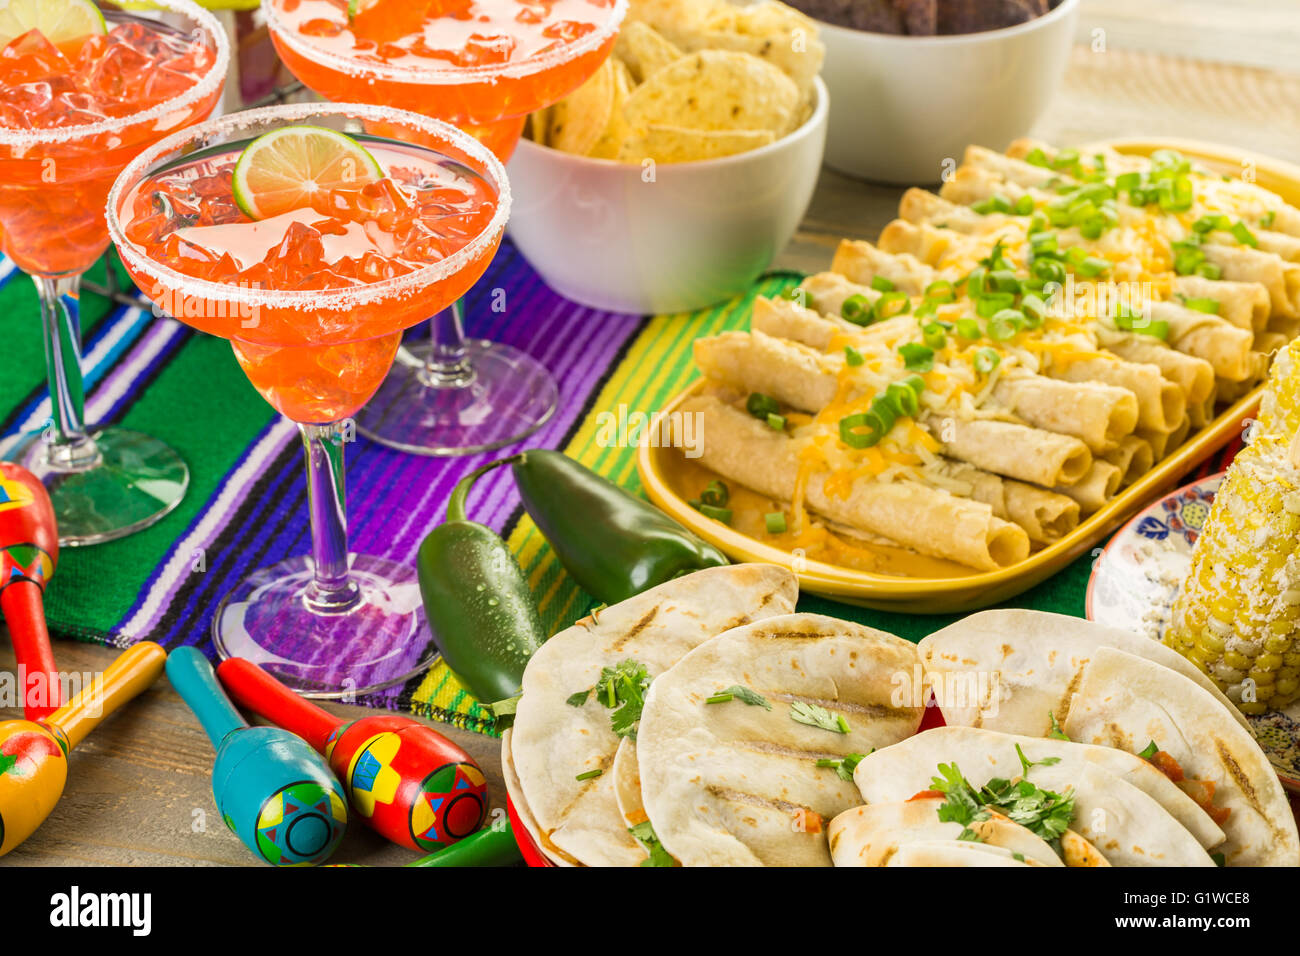 Fiesta Party Buffet Table With Traditional Mexican Food